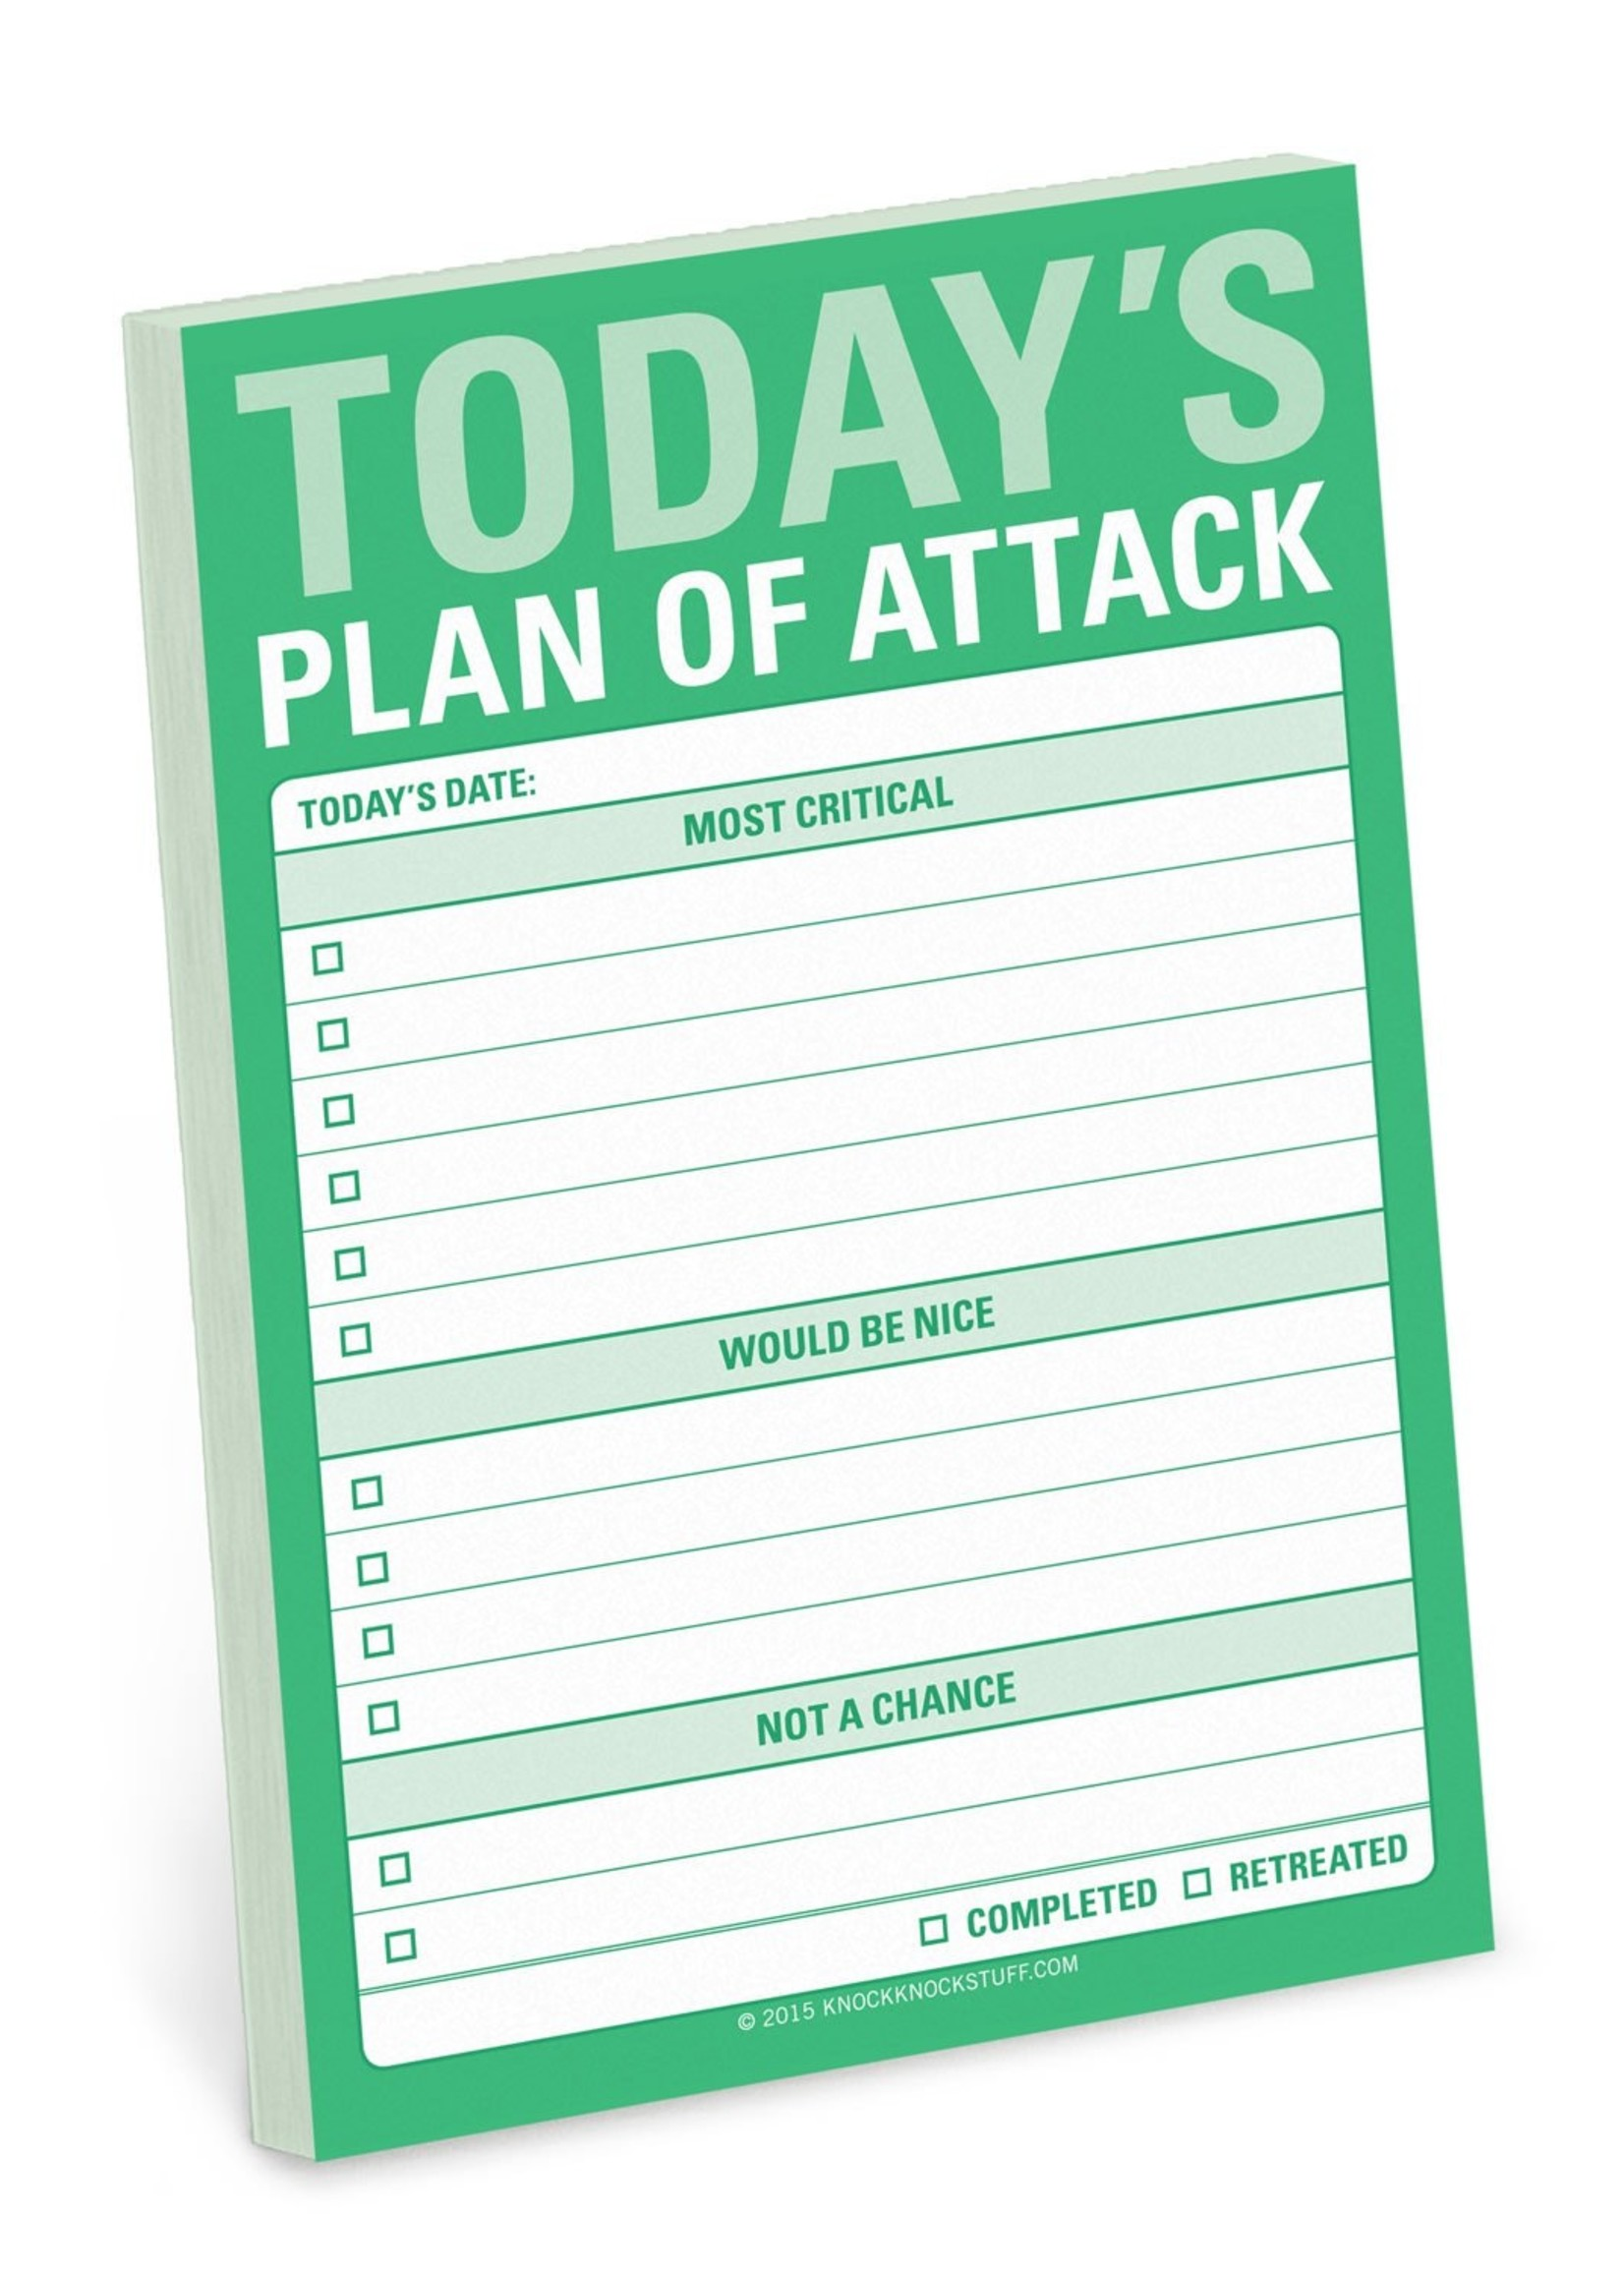 KNOCK KNOCK KNOCK KNOCK TODAY'S PLAN OF ATTACK